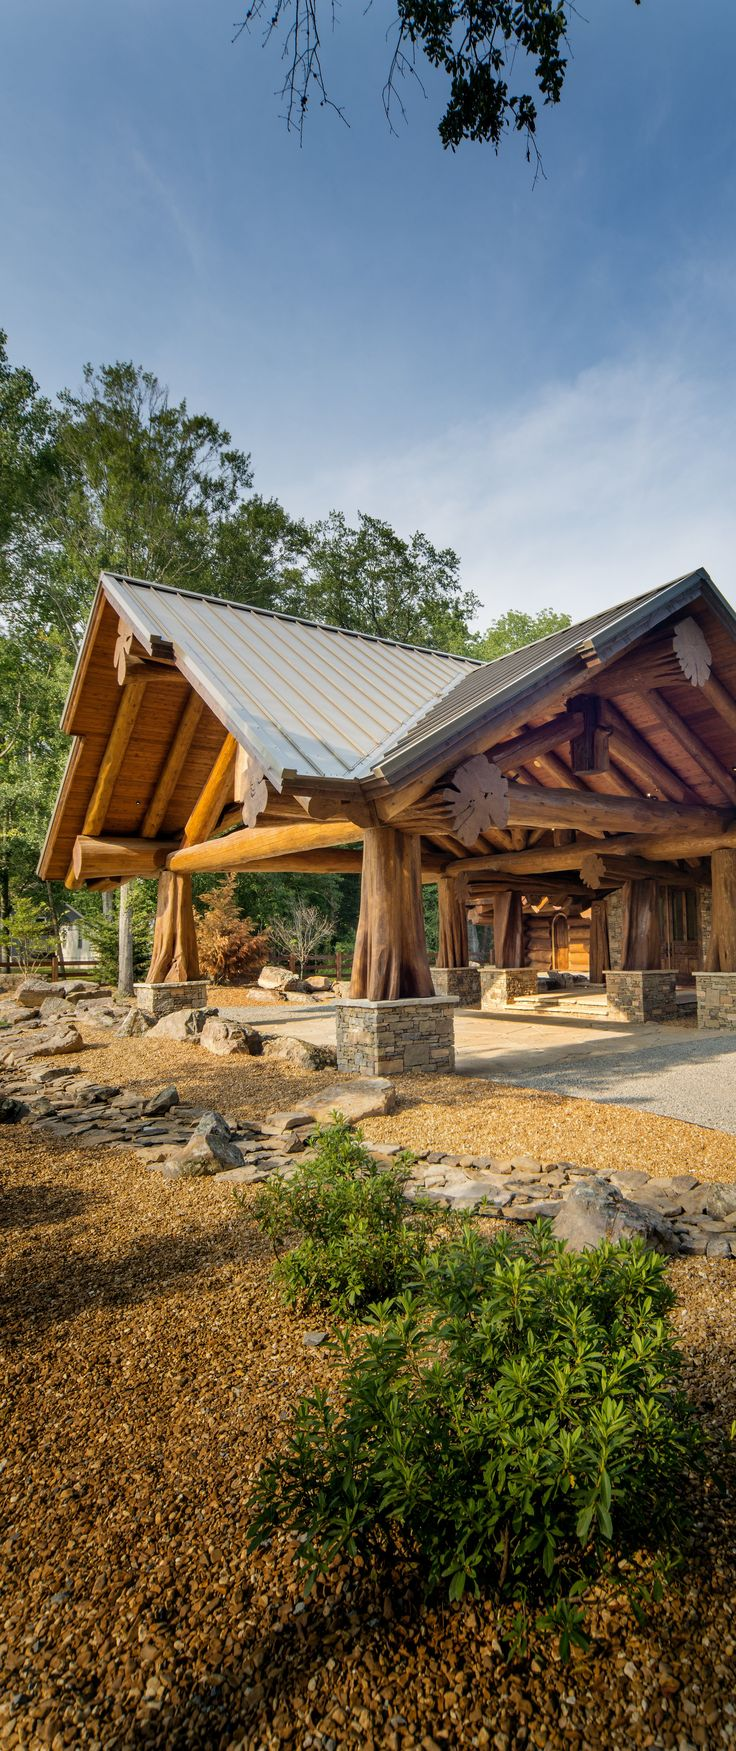 17 best ideas about cedar homes on pinterest small home plans cabin floor plans and rustic. Black Bedroom Furniture Sets. Home Design Ideas